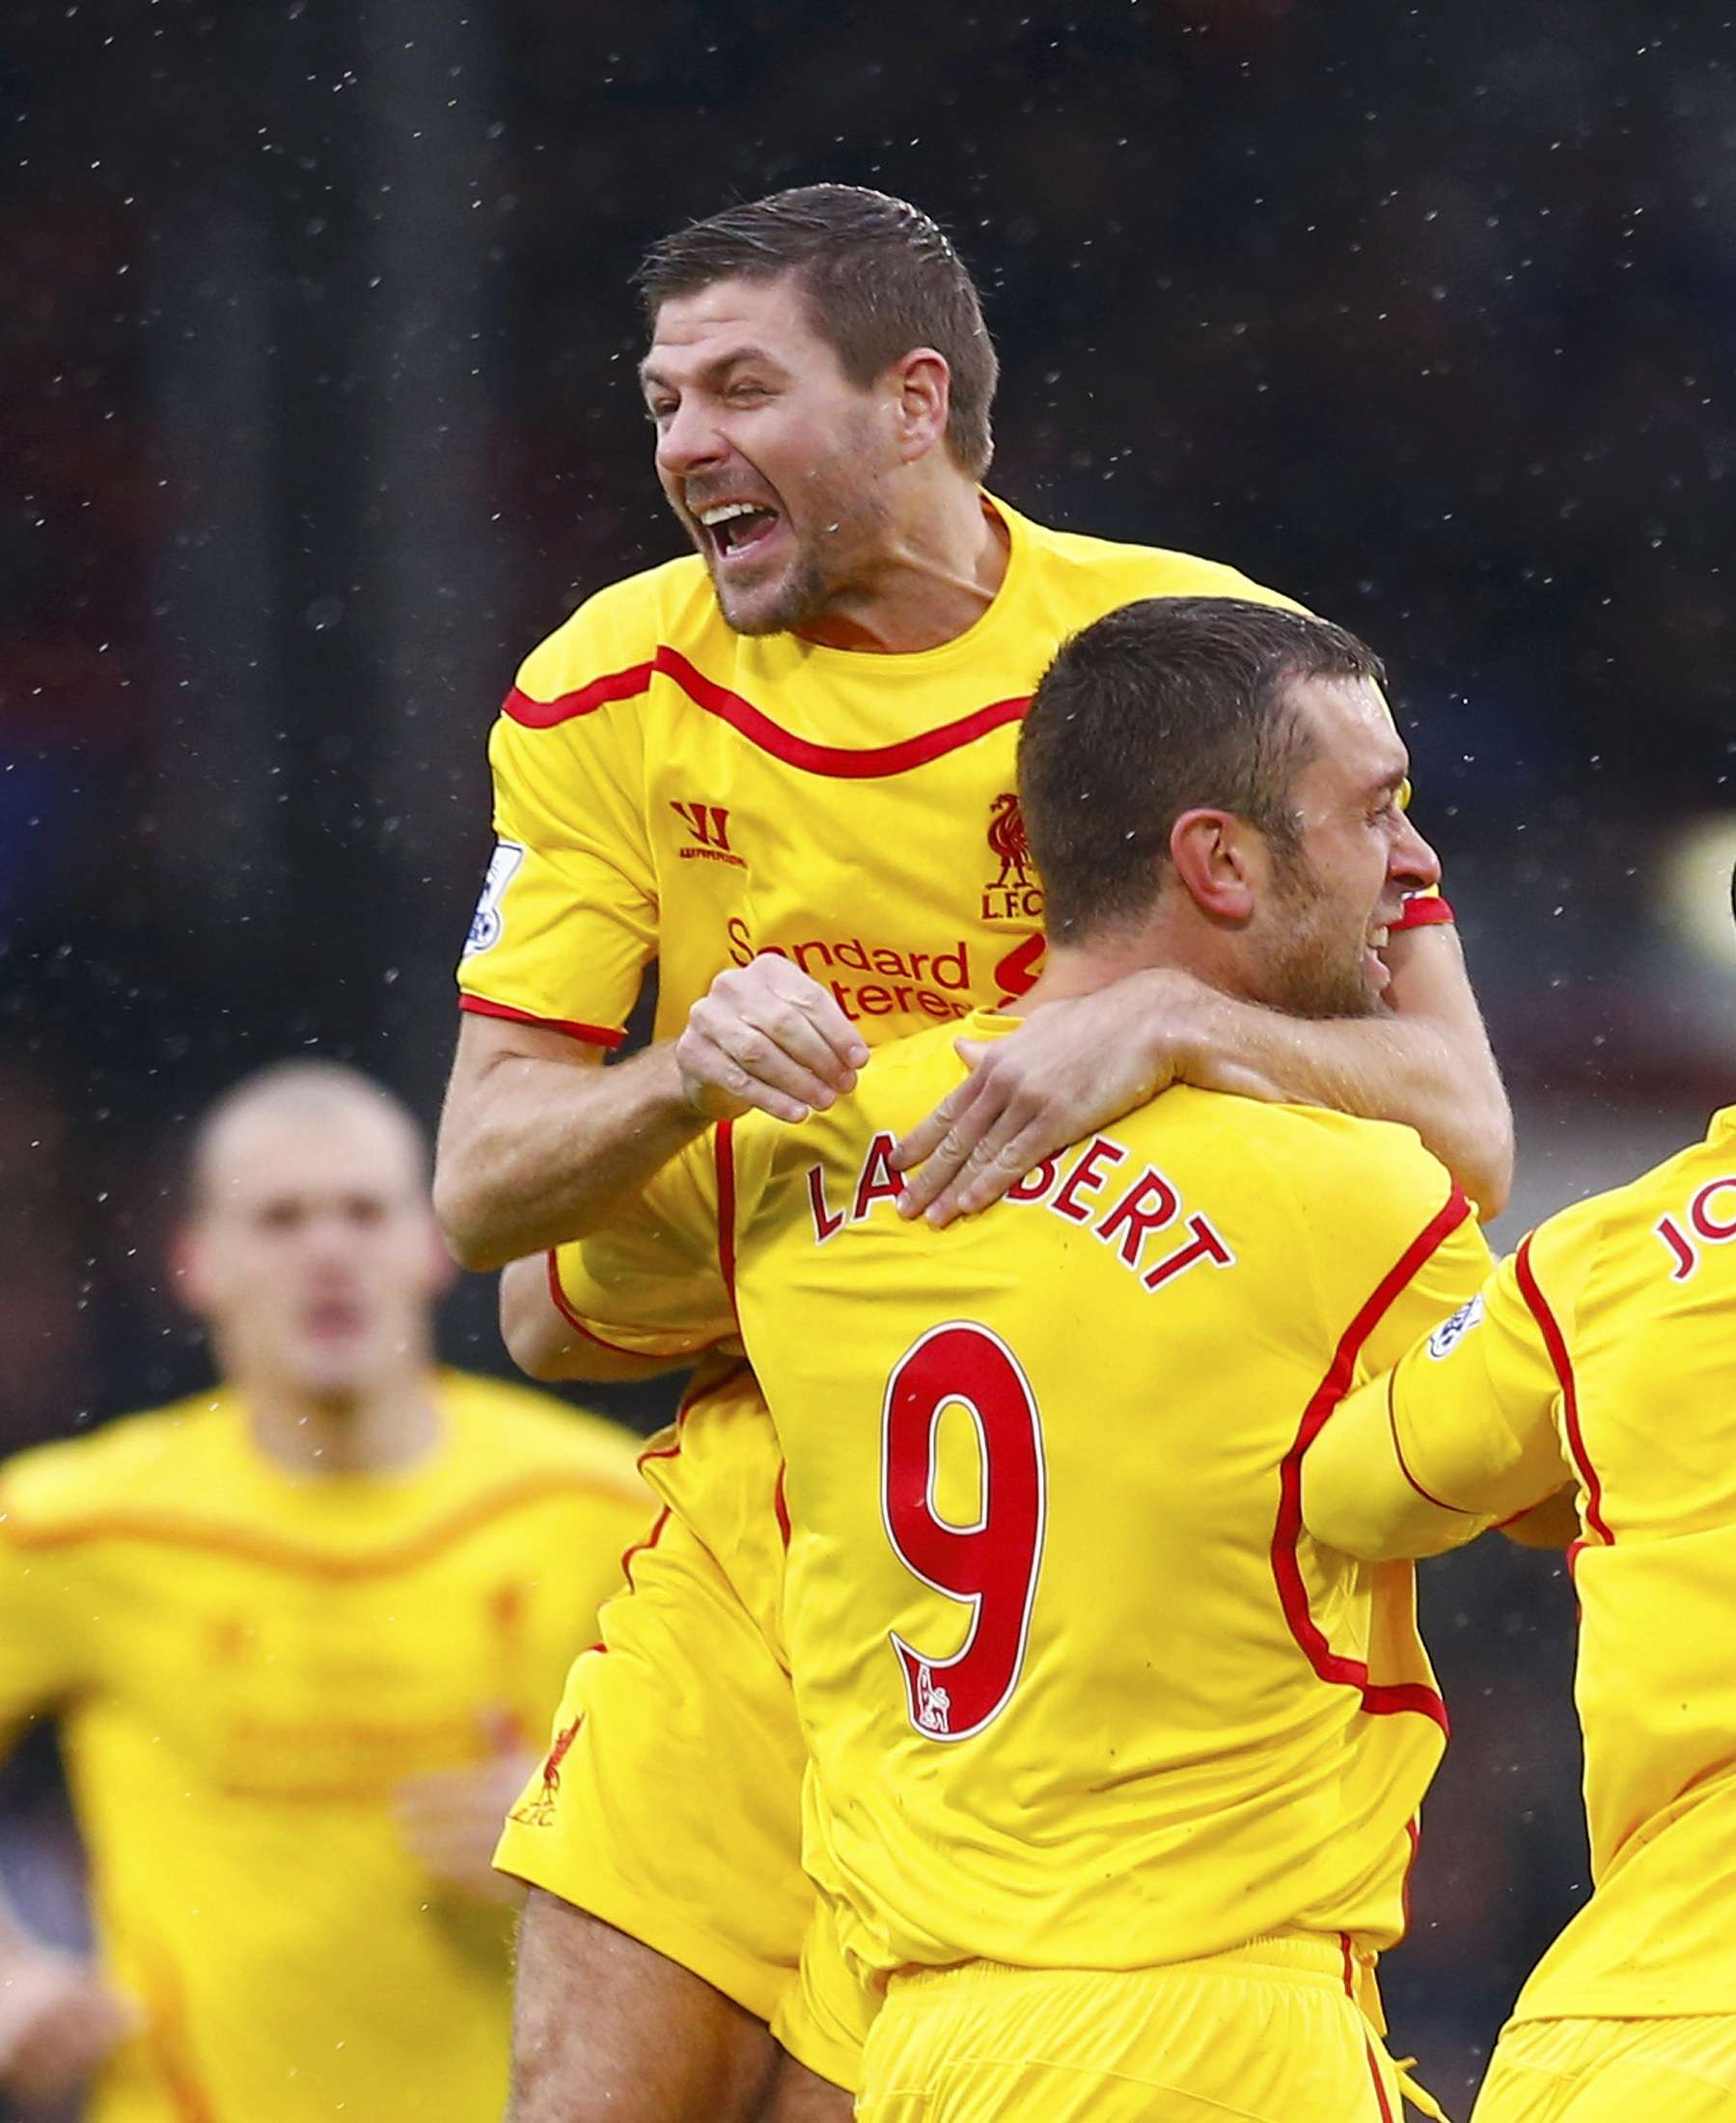 Liverpool's Steven Gerrard (REAR) celebrates with team-mate Rickie Lambert after Lambert scored a goal against Crystal Palace during their English Premier League soccer match at Selhurst Park in London November 23, 2014. REUTERS/Eddie Keogh (BRITAIN - Tags: SOCCER SPORT) FOR EDITORIAL USE ONLY. NOT FOR SALE FOR MARKETING OR ADVERTISING CAMPAIGNS. EDITORIAL USE ONLY. NO USE WITH UNAUTHORIZED AUDIO, VIDEO, DATA, FIXTURE LISTS, CLUB/LEAGUE LOGOS OR 'LIVE' SERVICES. ONLINE IN-MATCH USE LIMITED TO 45 IMAGES, NO VIDEO EMULATION. NO USE IN BETTING, GAMES OR SINGLE CLUB/LEAGUE/PLAYER PUBLICATIONS. Foto: EDDIE KEOGH/REUTERS